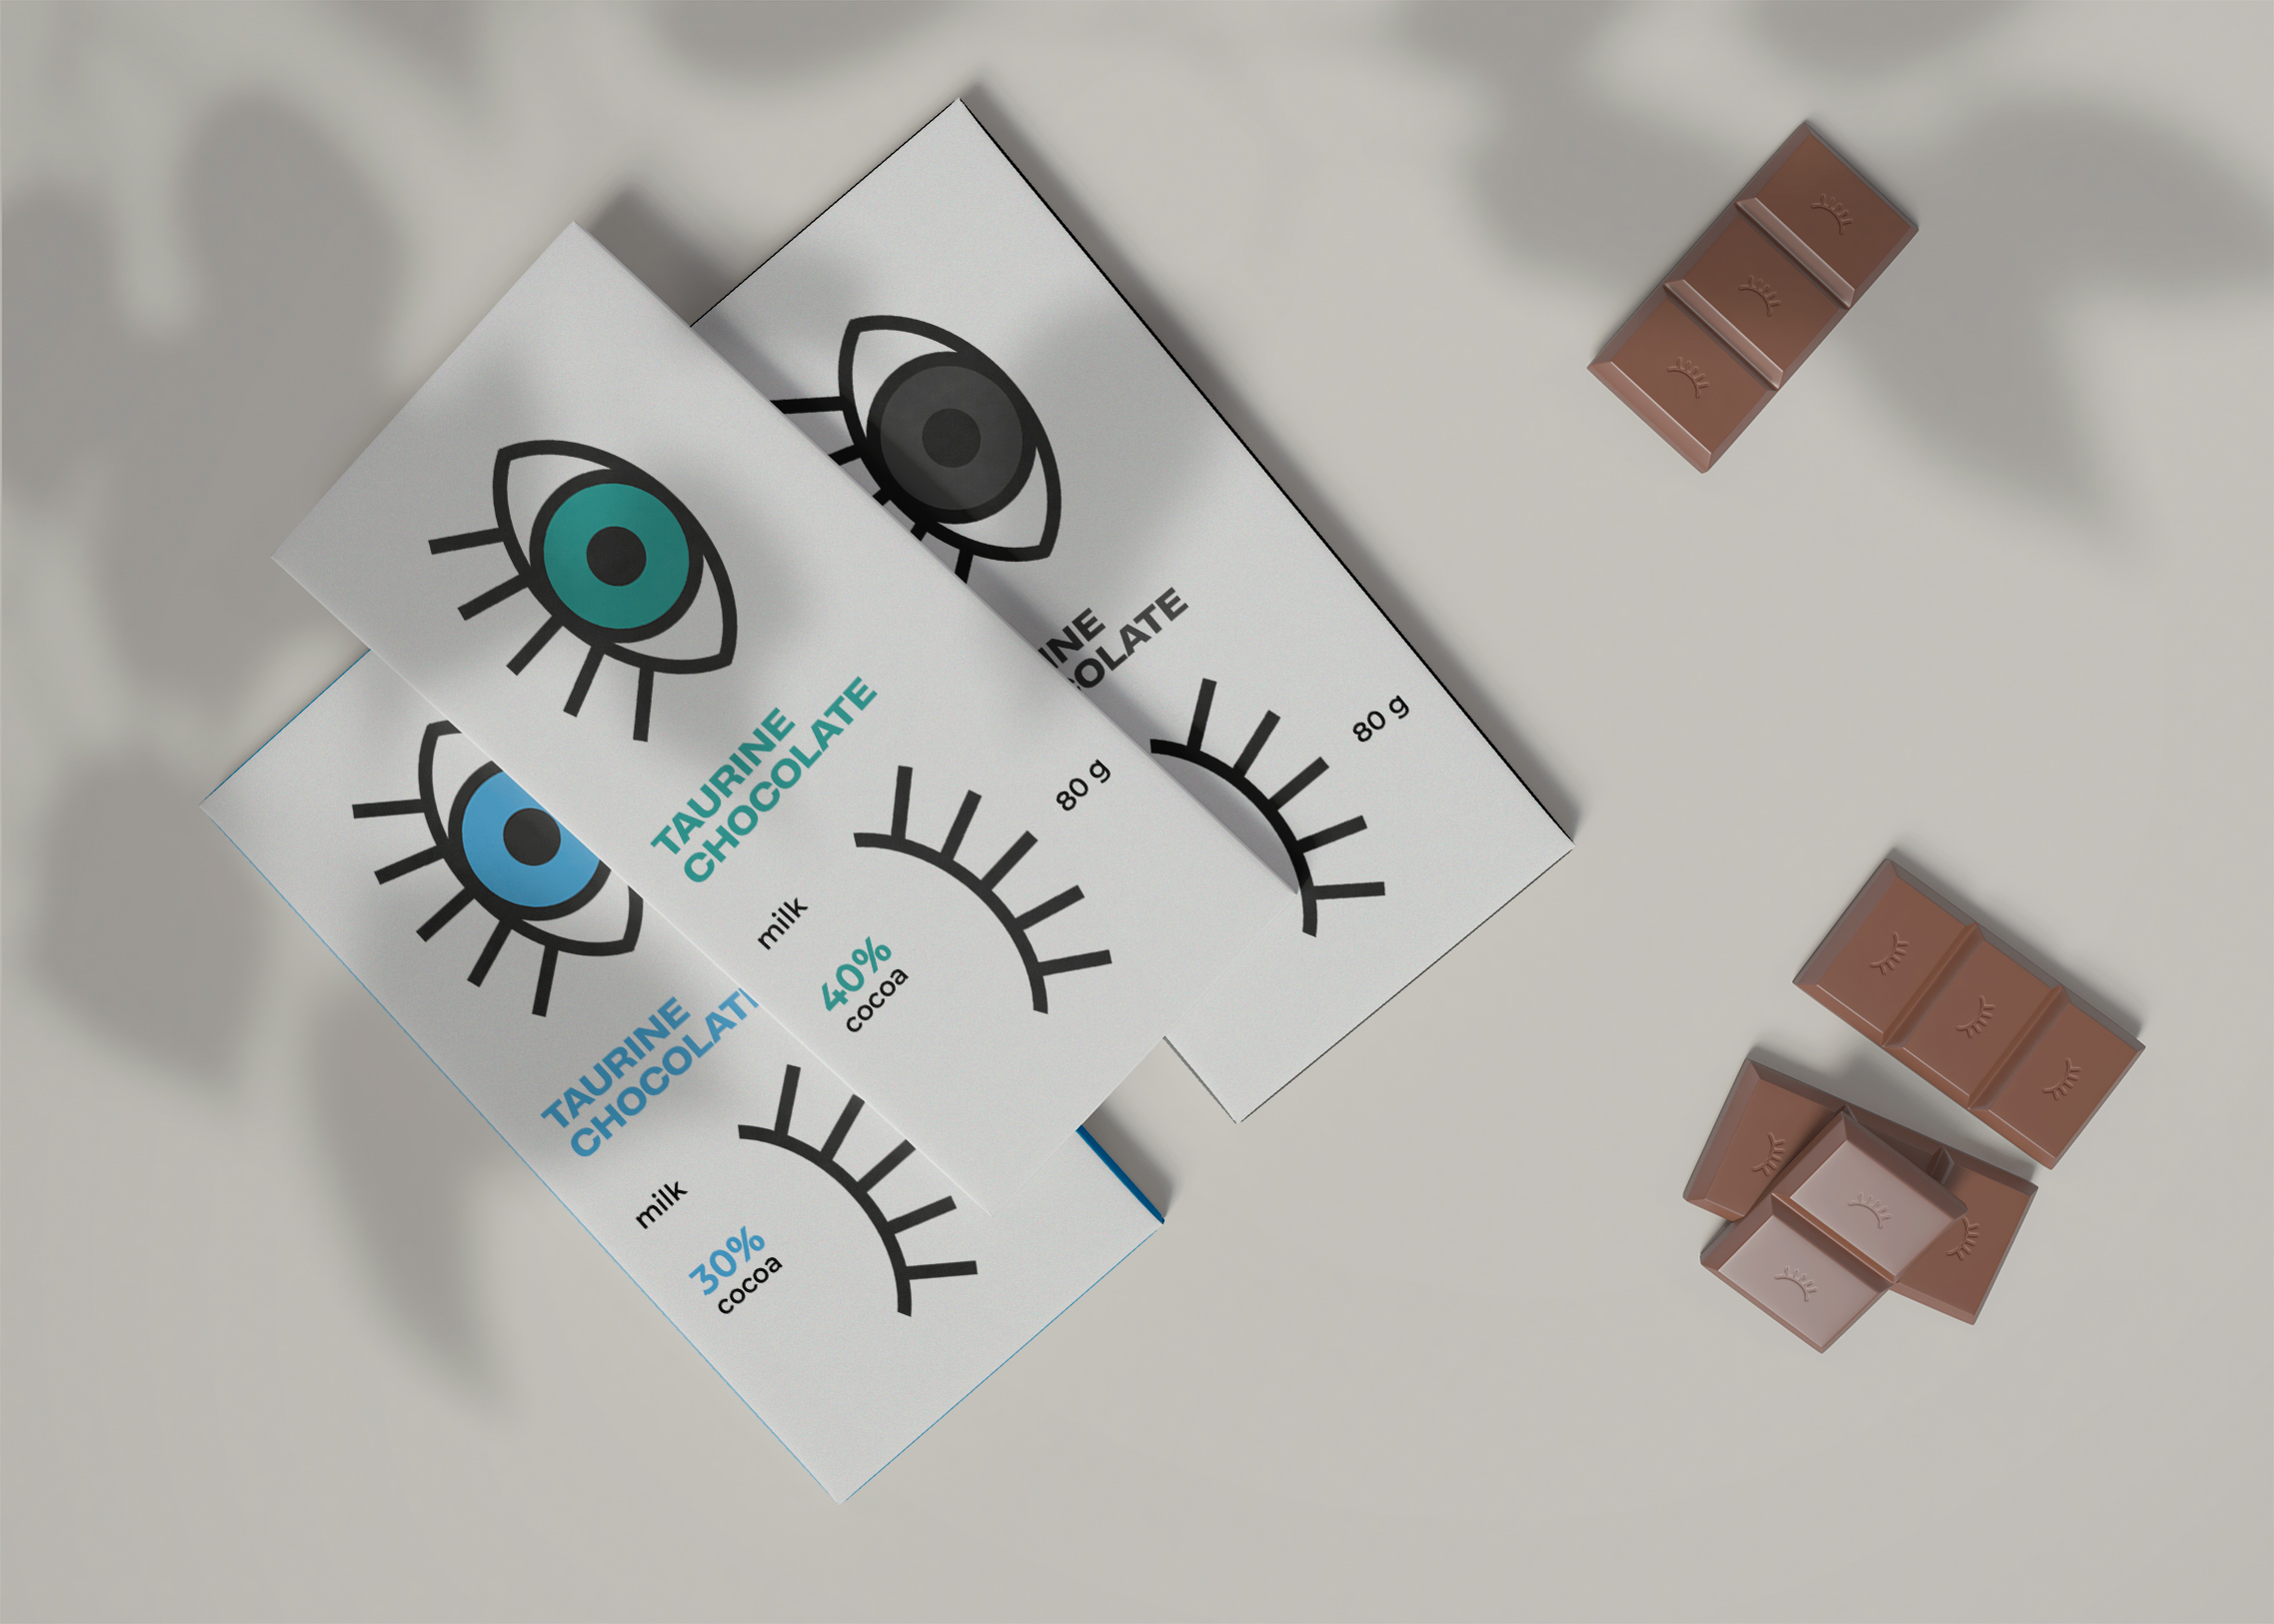 Taurine Chocolate Packaging Design Concept by Student Kristina Dyug